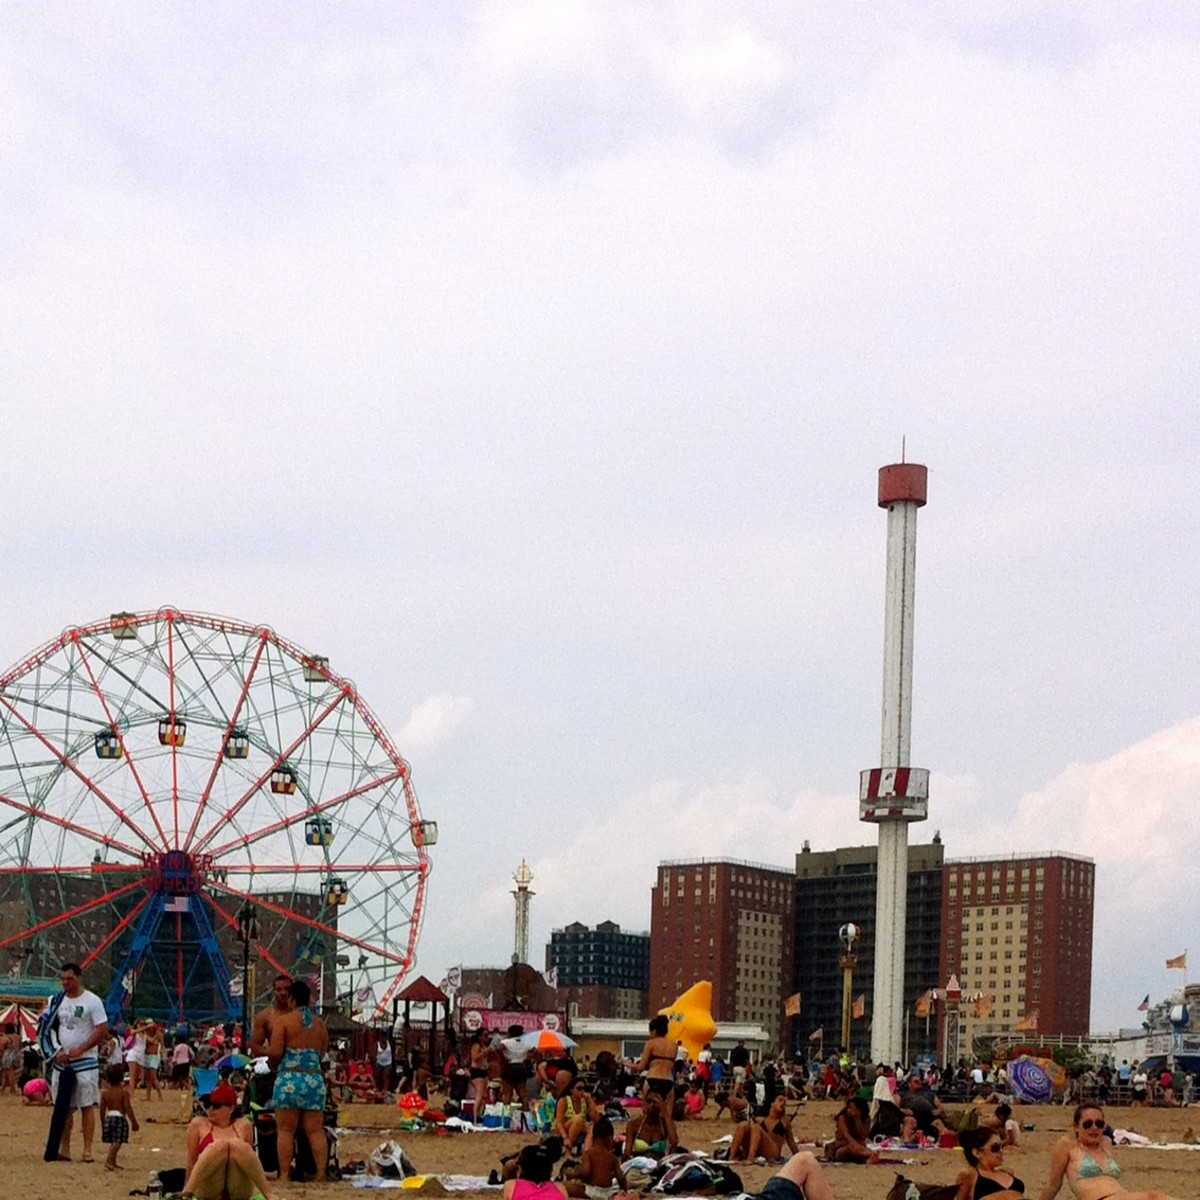 Coney Island - a trip to the beach or an amusement park could be a nice way to celebrate.